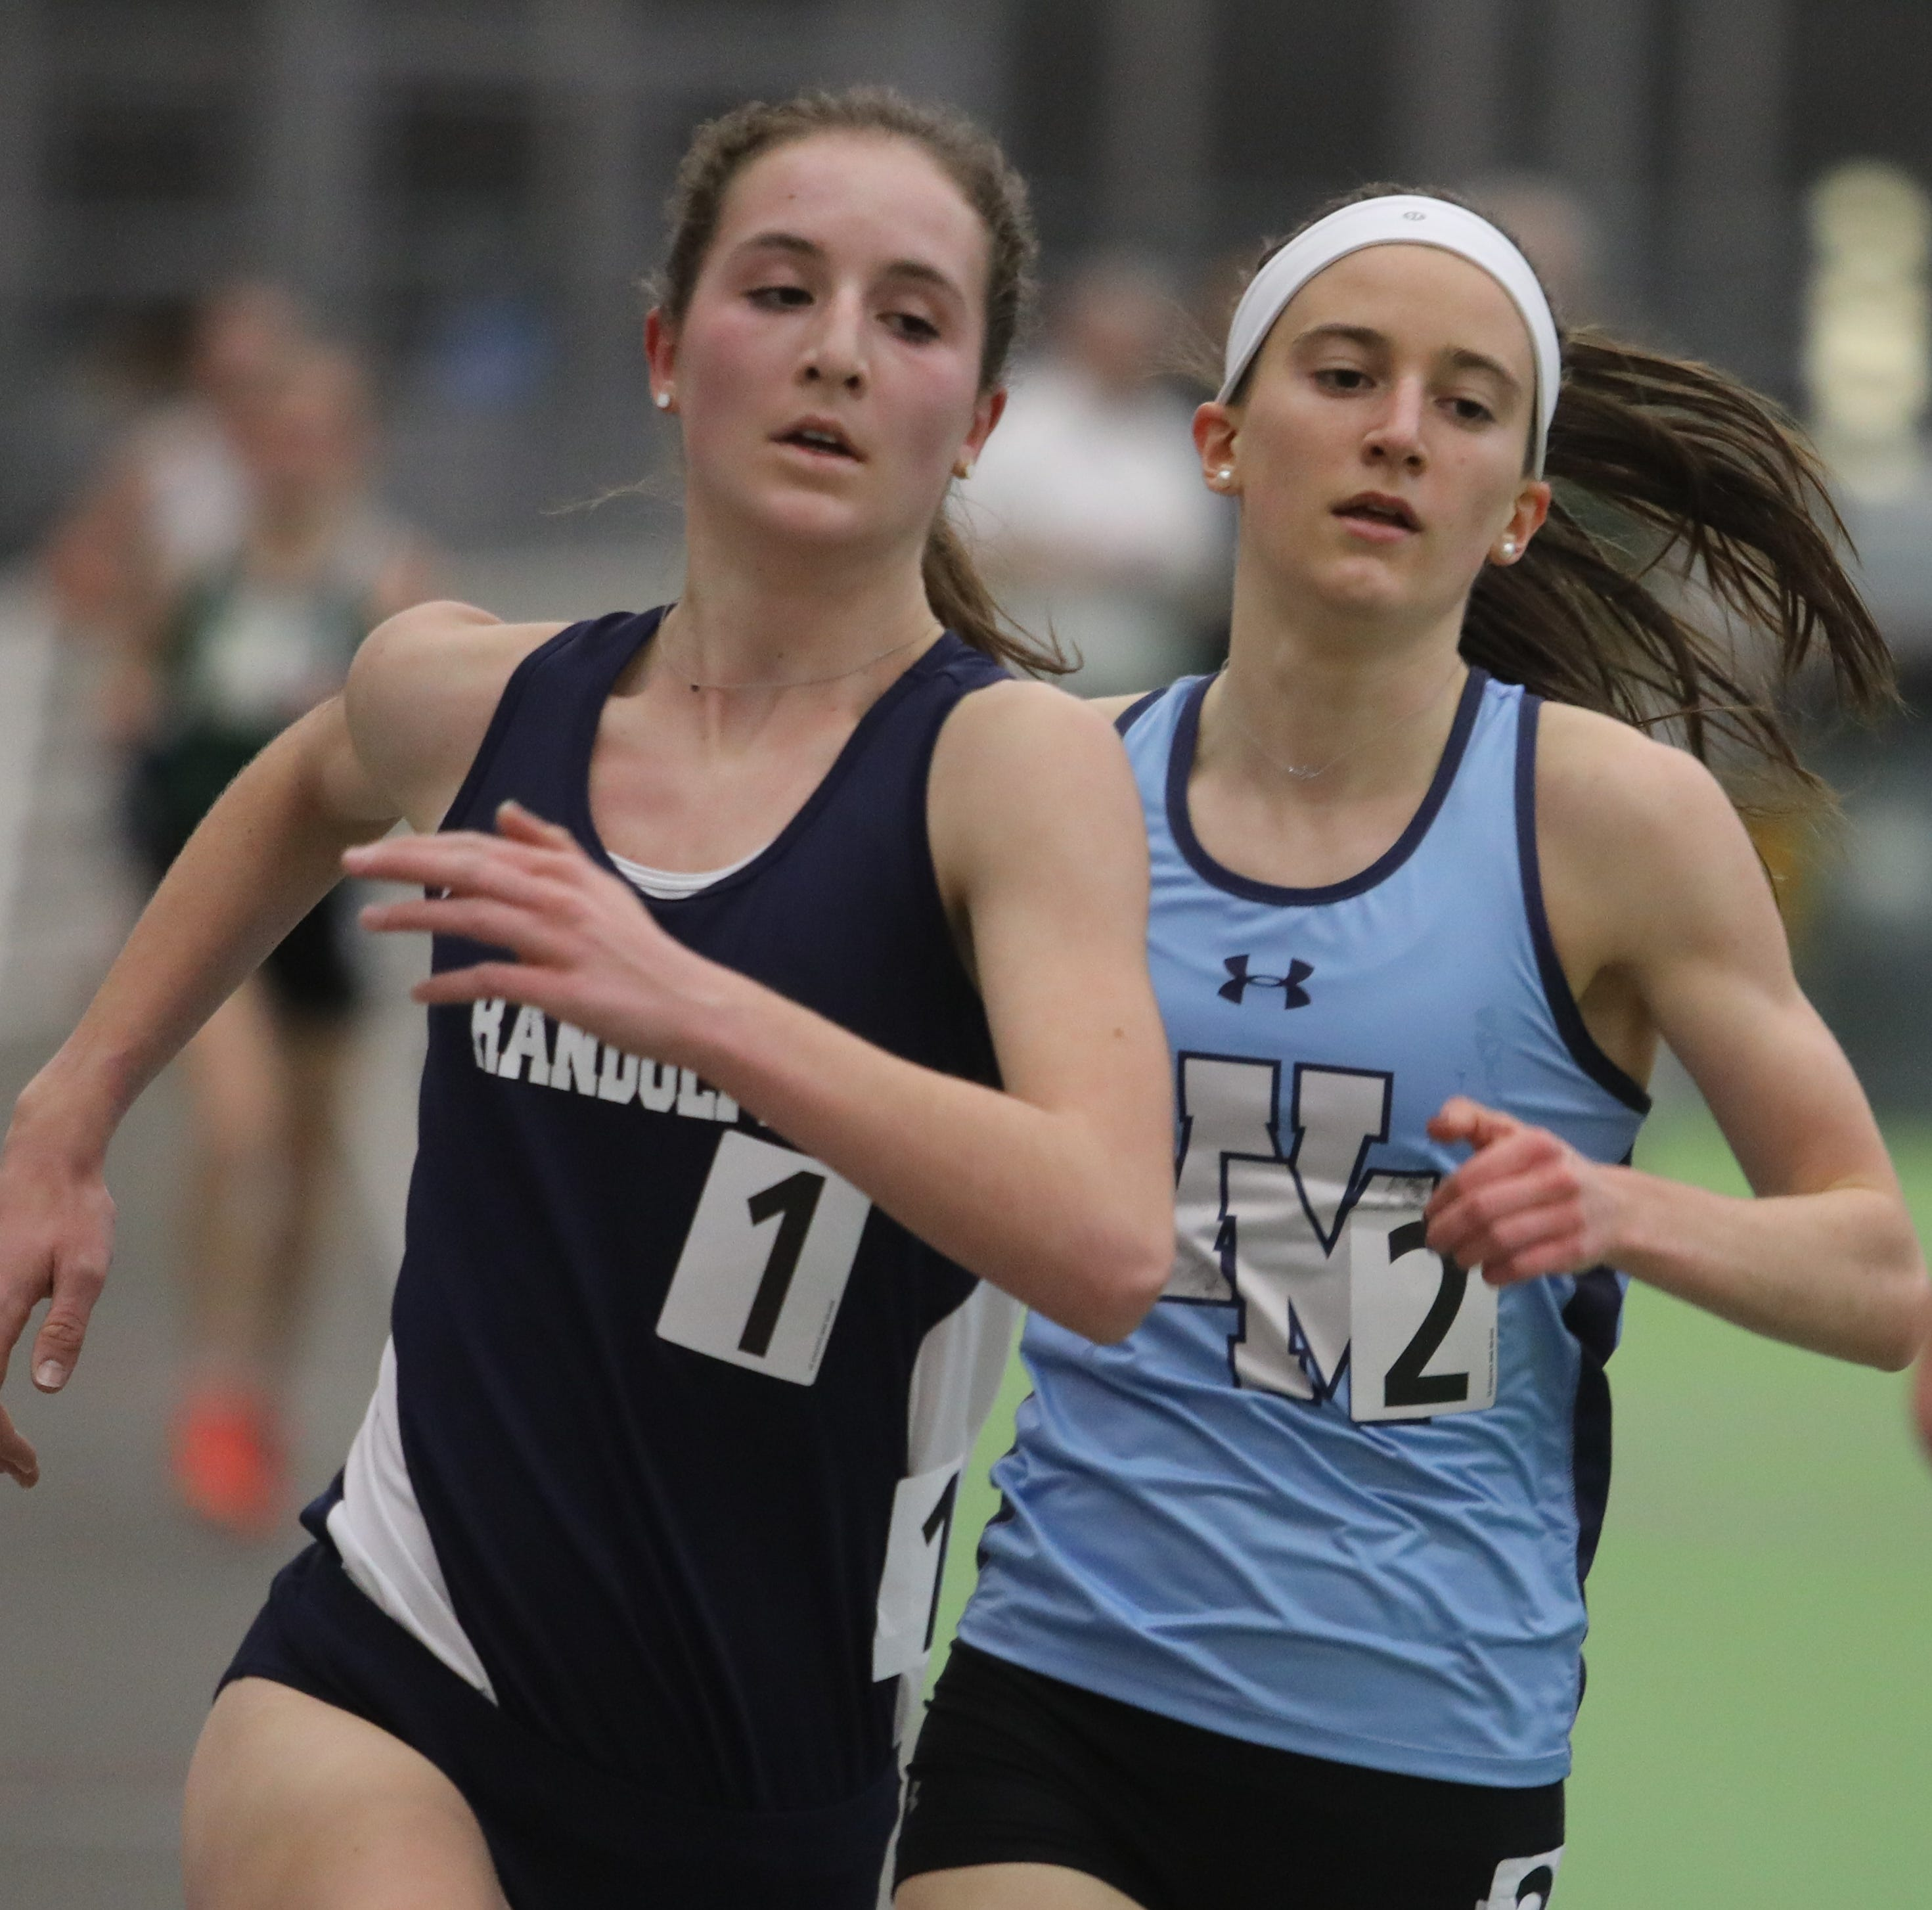 Loveys, O'Malley lead Randolph girls to third straight Morris County team title